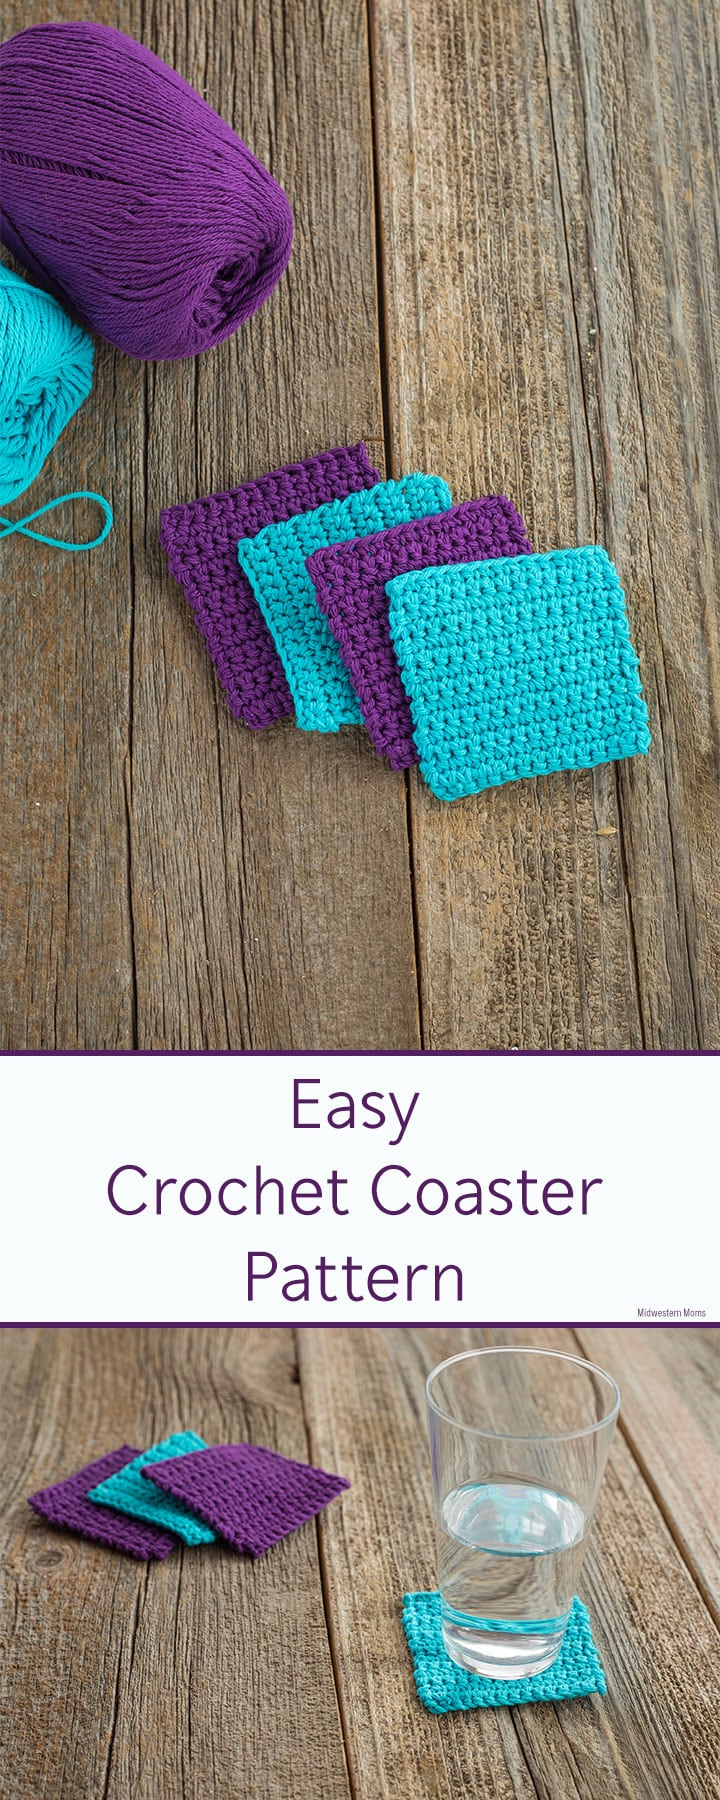 Easy crochet coaster pattern that is perfect for beginners! Simple pattern uses only single crochet stitches to make a square coaster.